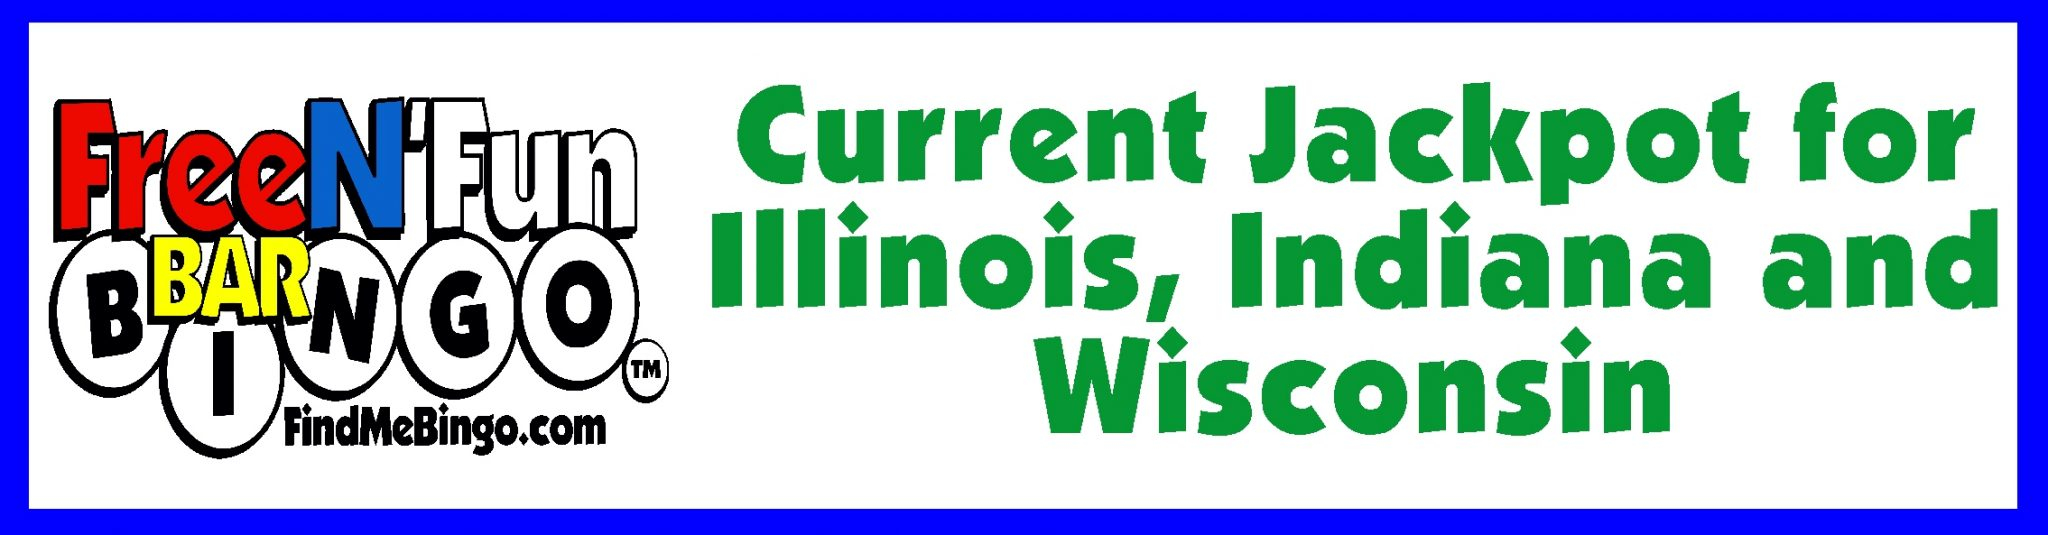 Current Jackpot for Illinois, Indiana & Wisconsin